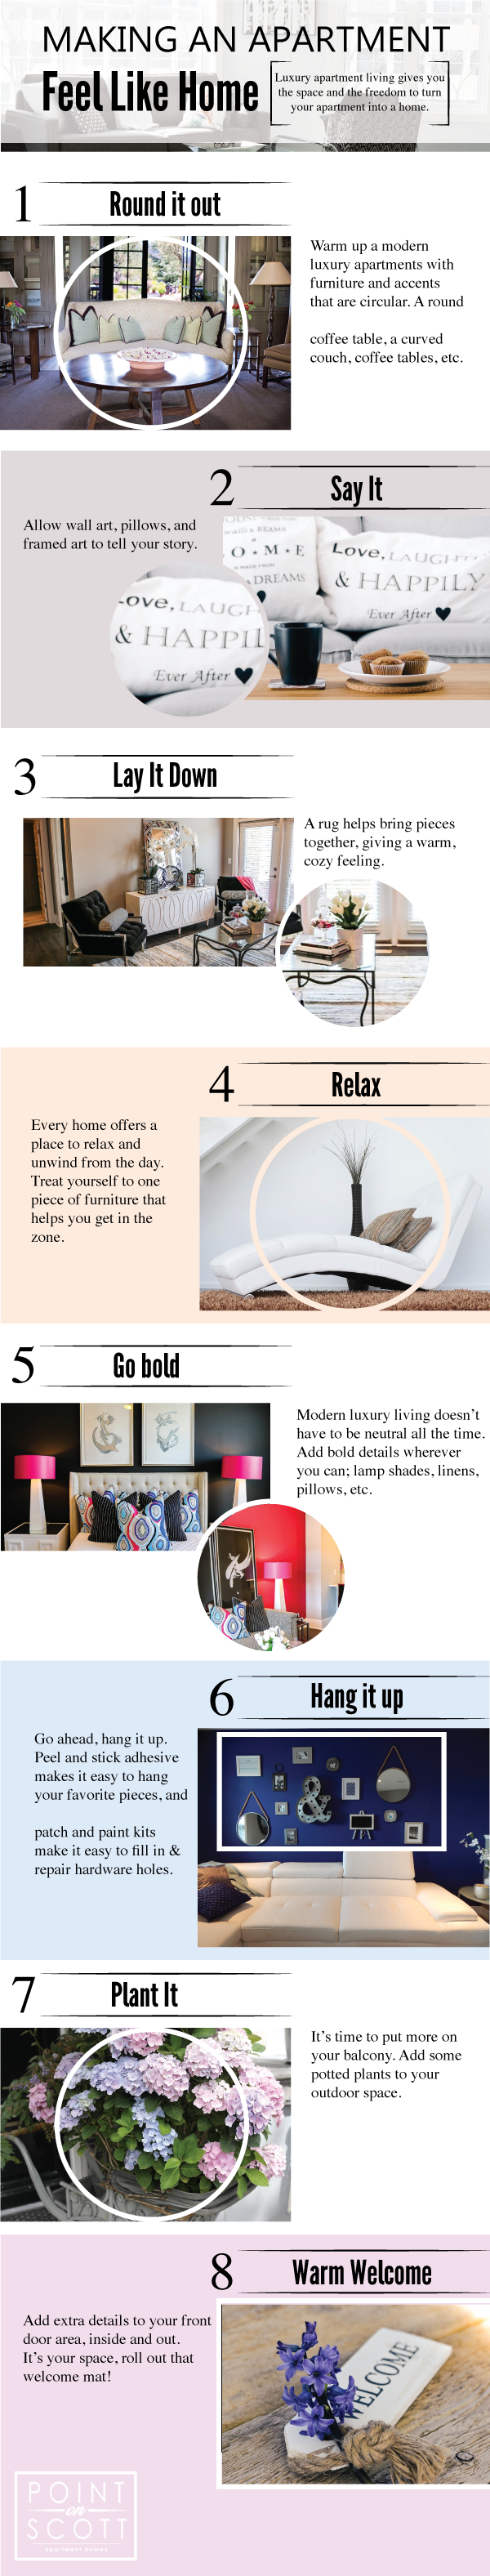 Making an Apartment Feel like Home Infographic